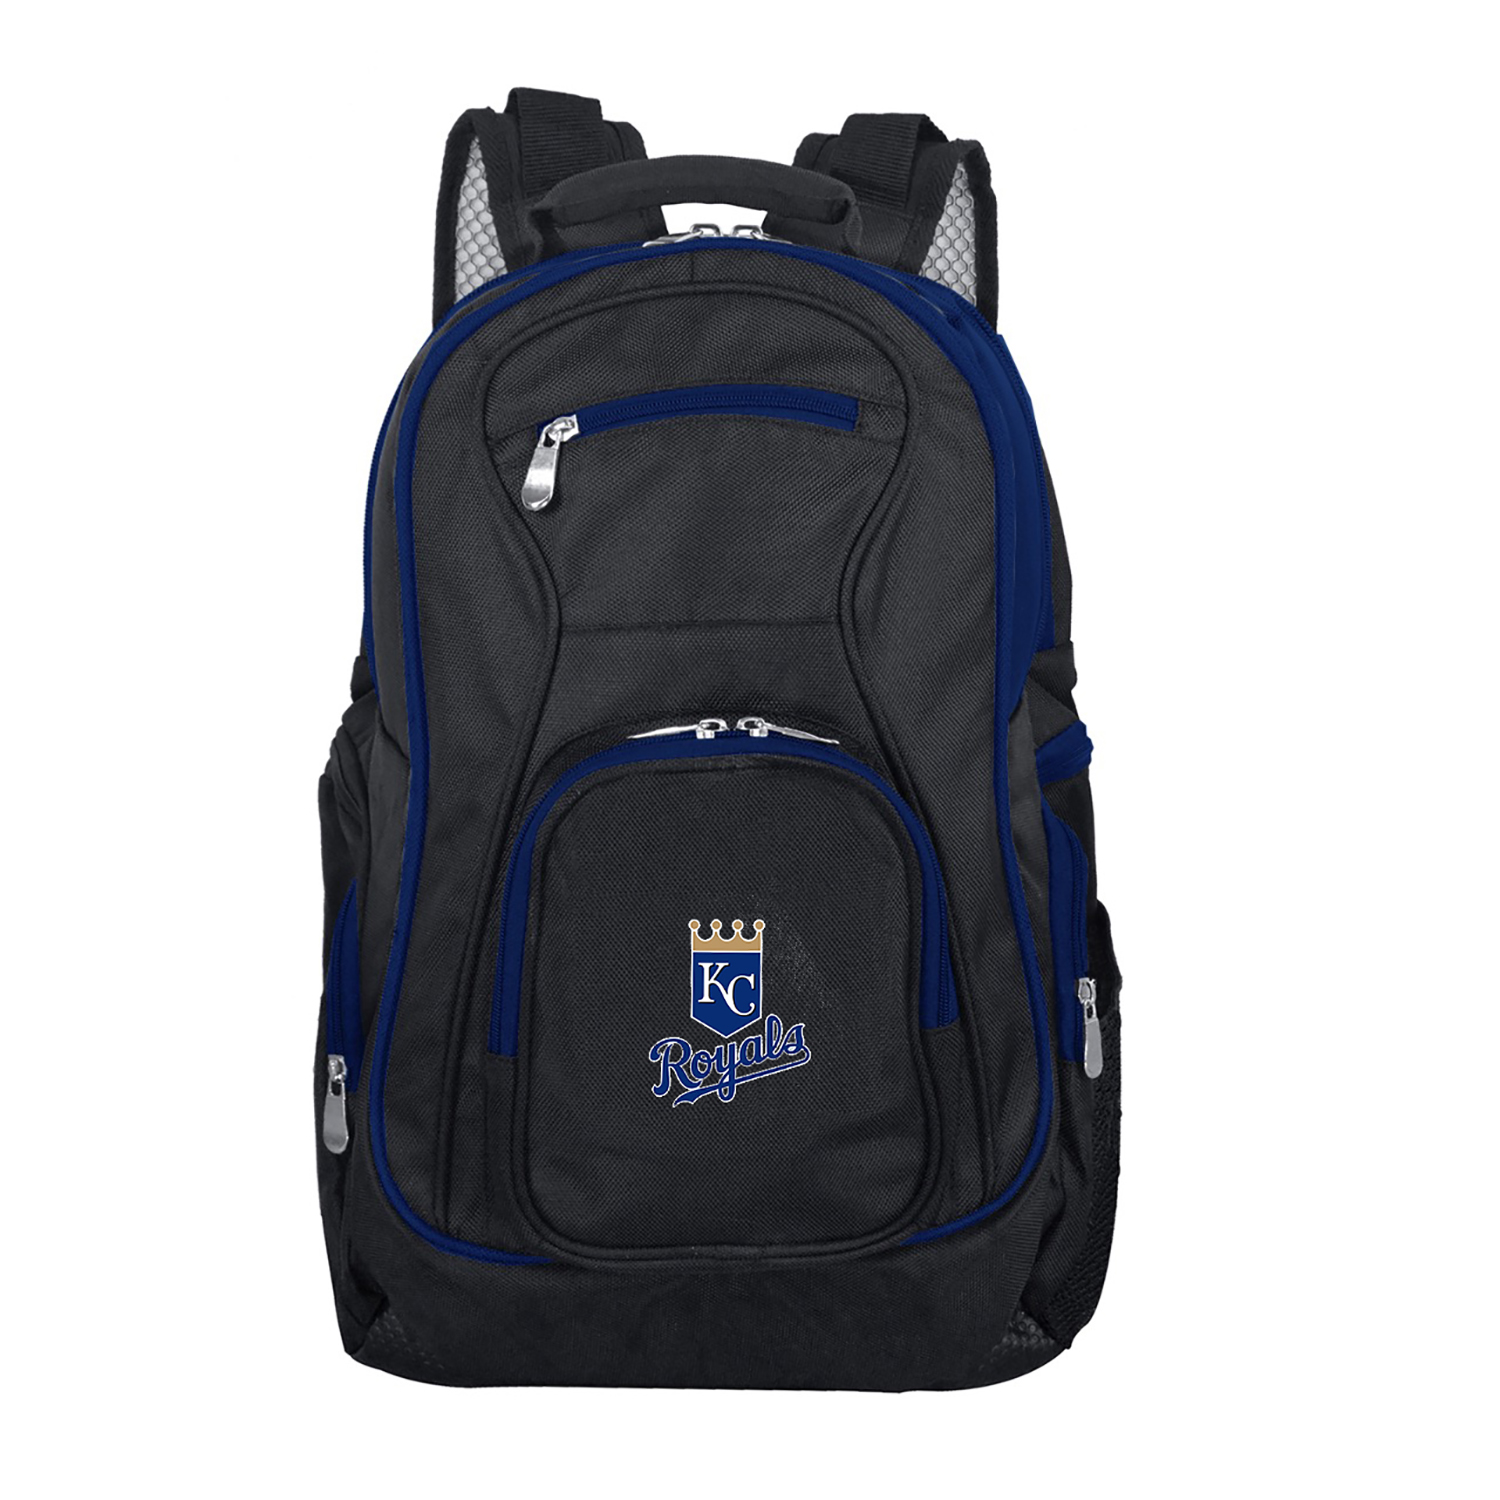 MLB Kansas City Royals Premium Laptop Backpack with Colored Trim